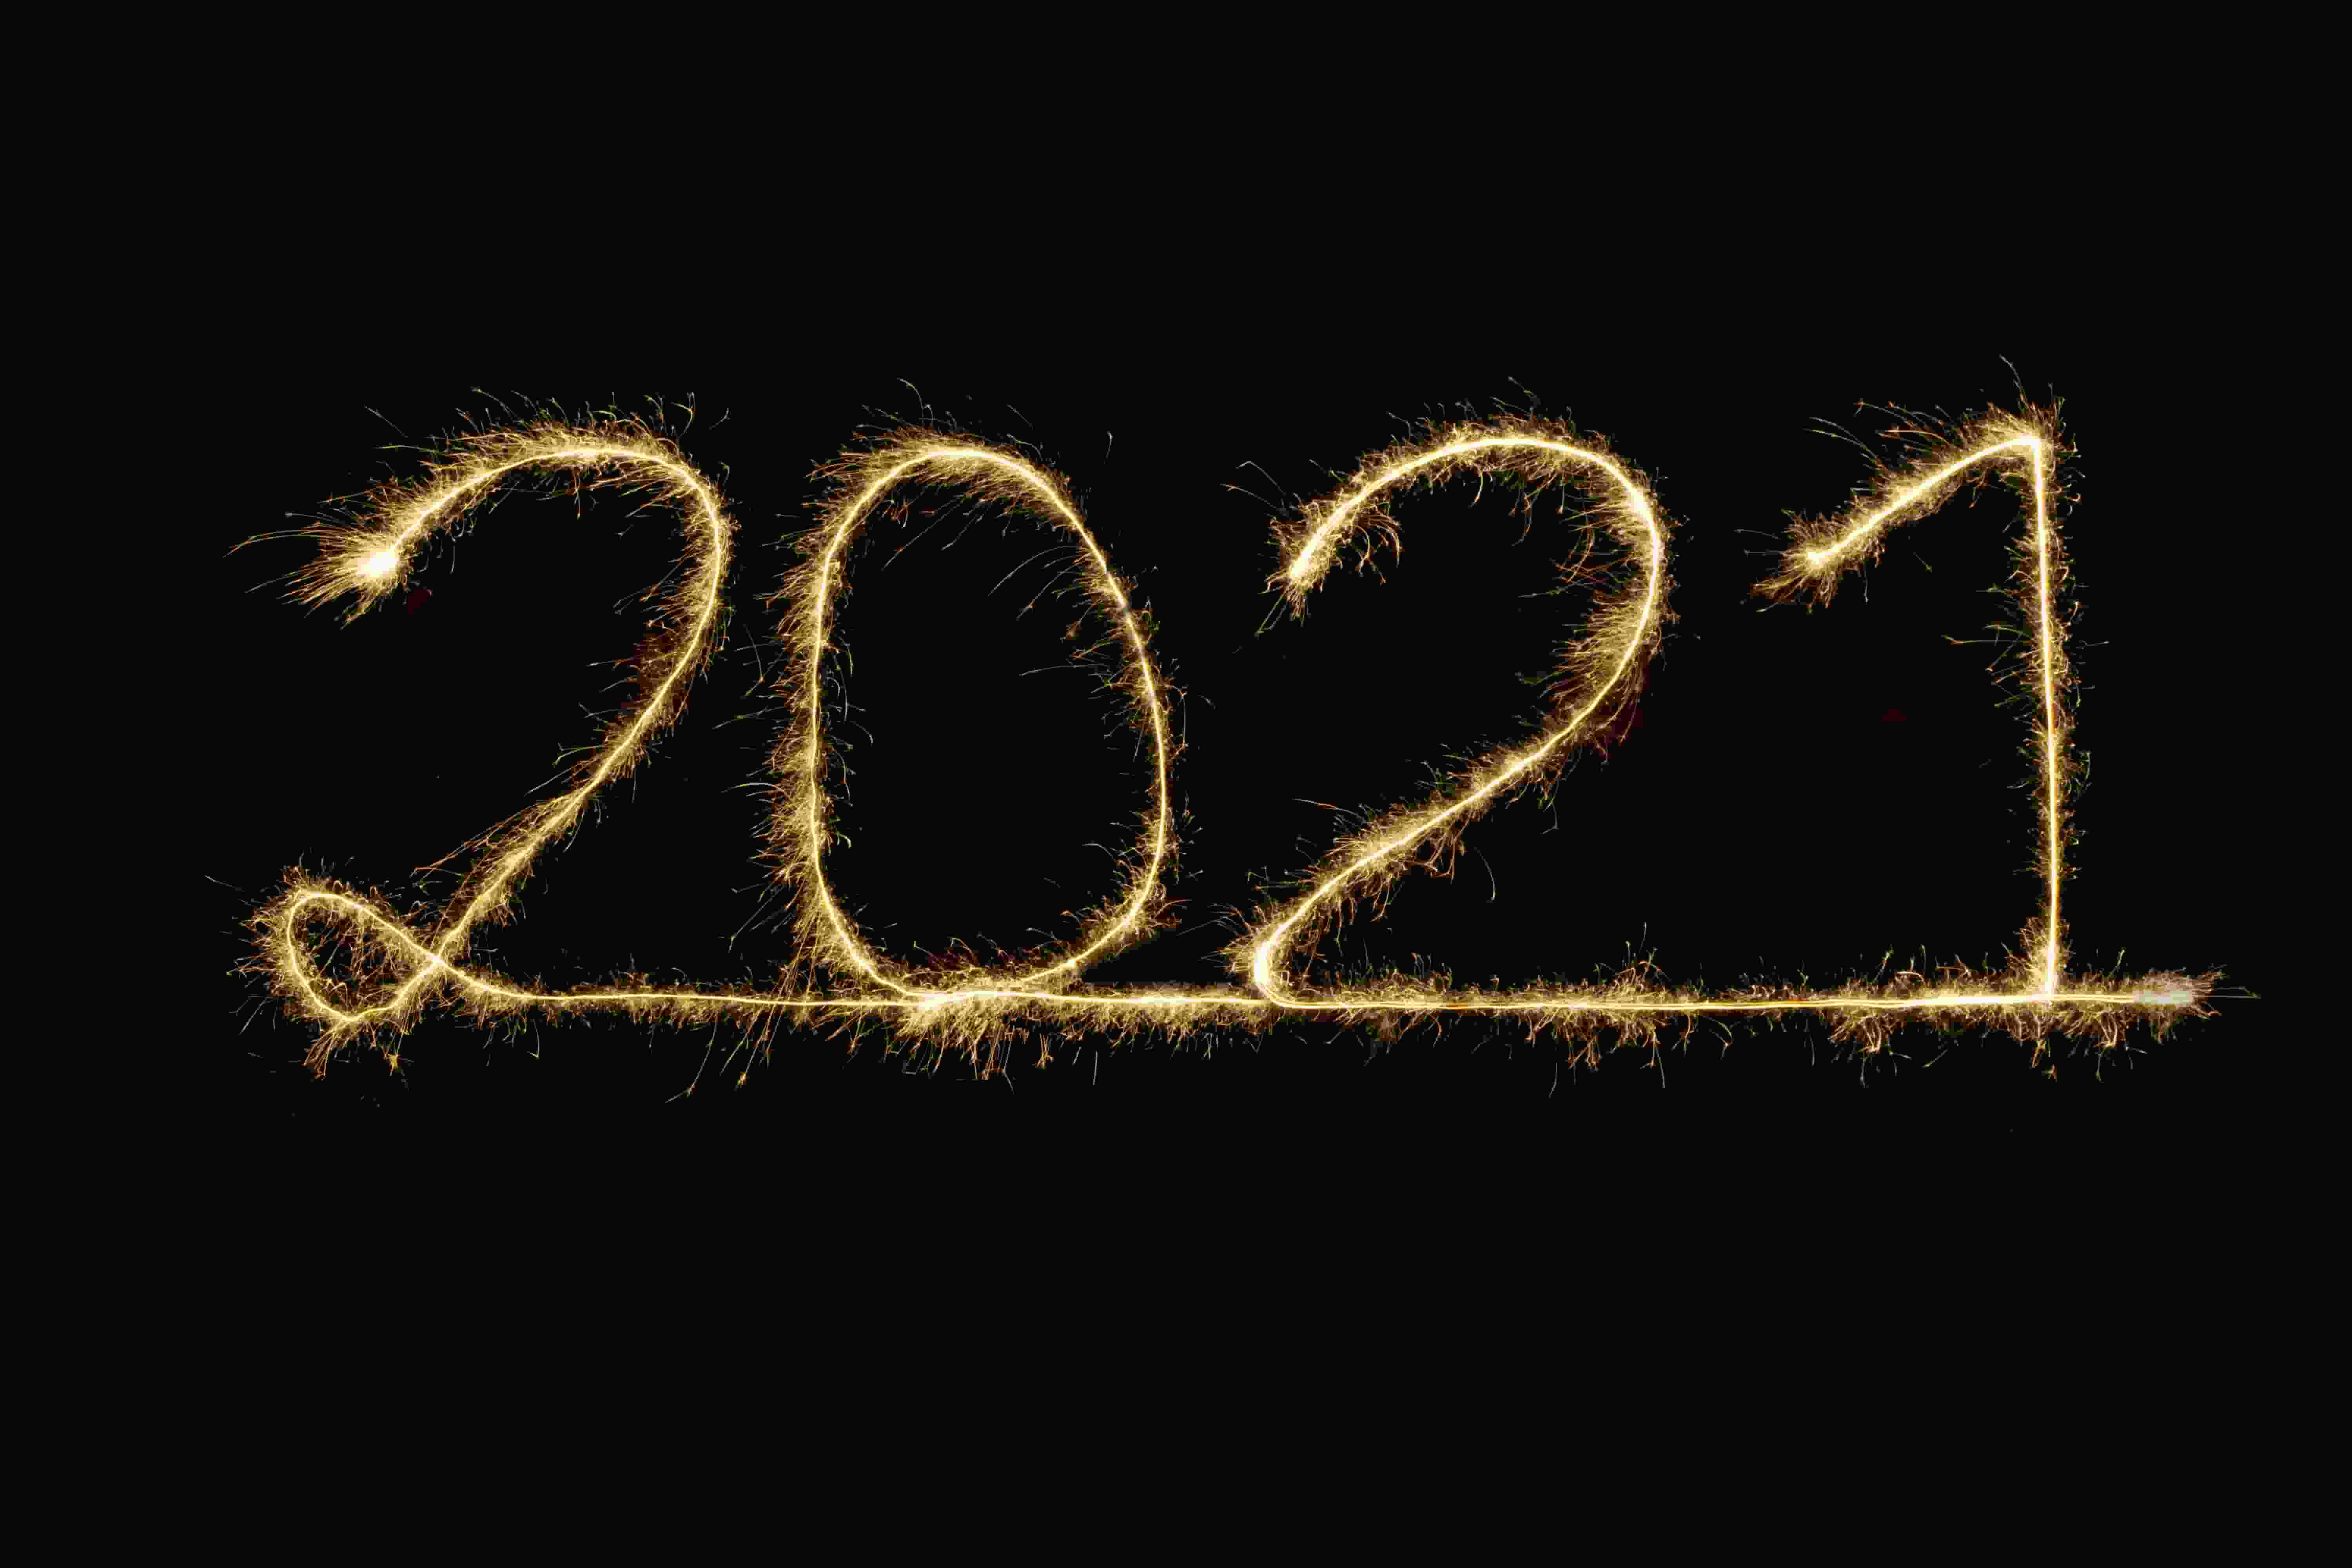 The numbers 2021 in sparkler.